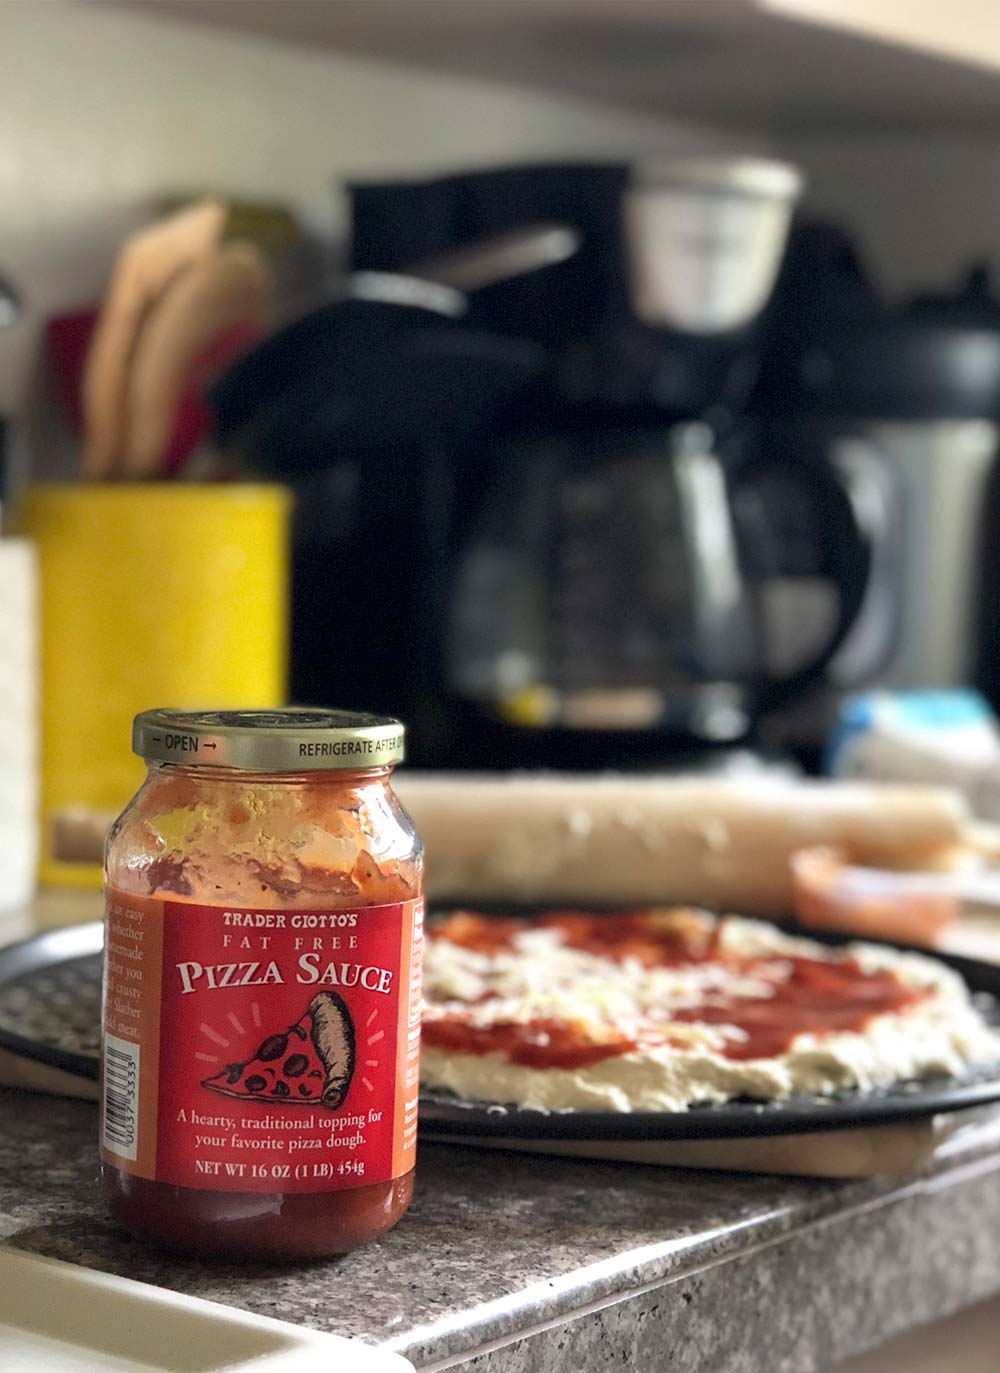 trader joes pizza sauce